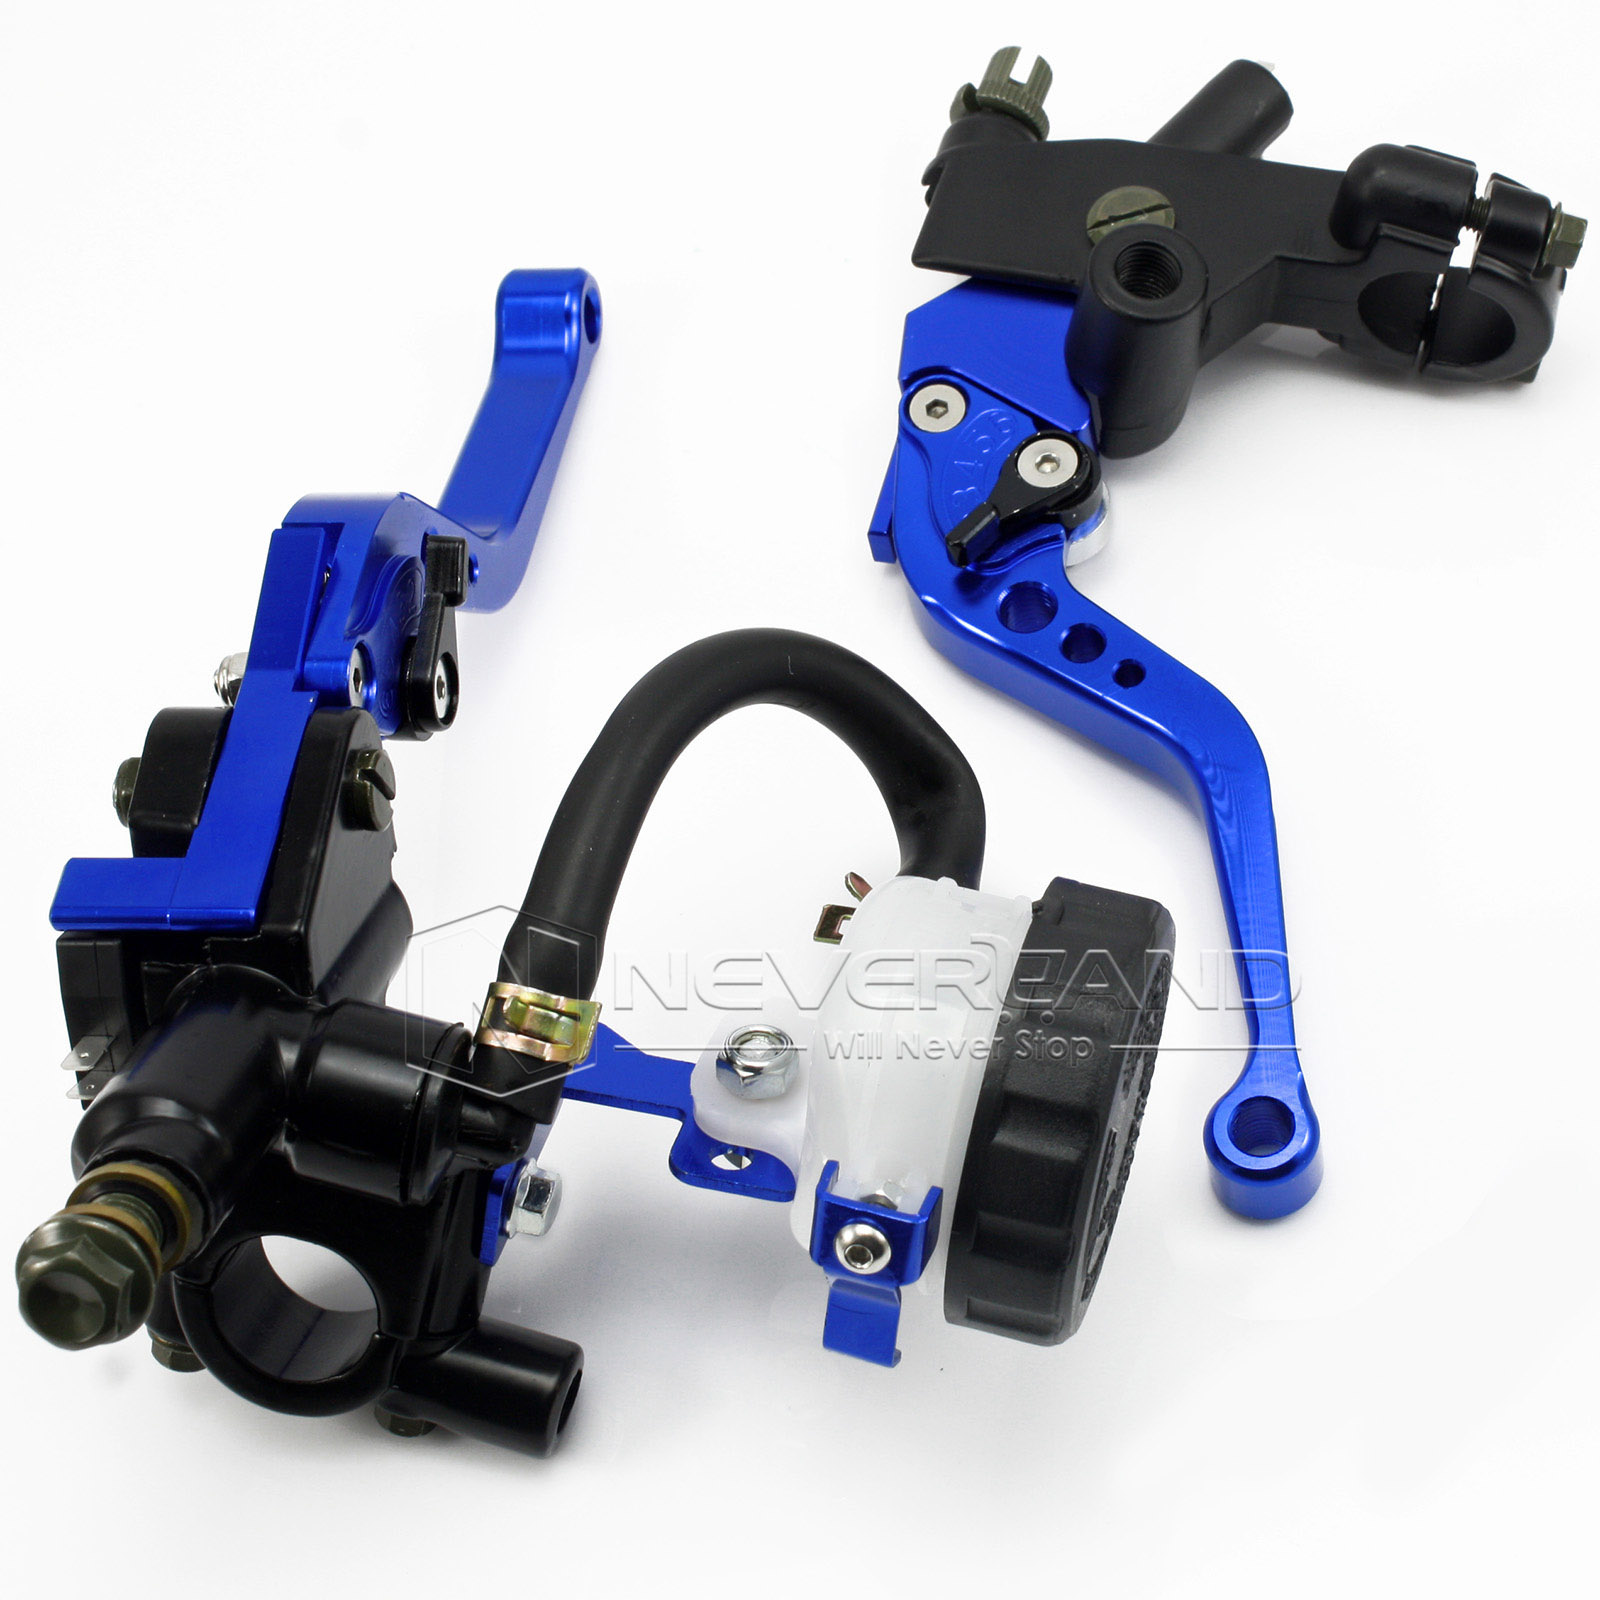 Universal CNC 7/8 22mm Blue Motorcycle Brake Clutch Levers Master Cylinder Reservoir Set For Honda Suzuki Kawasaki Yamaha D10<br><br>Aliexpress